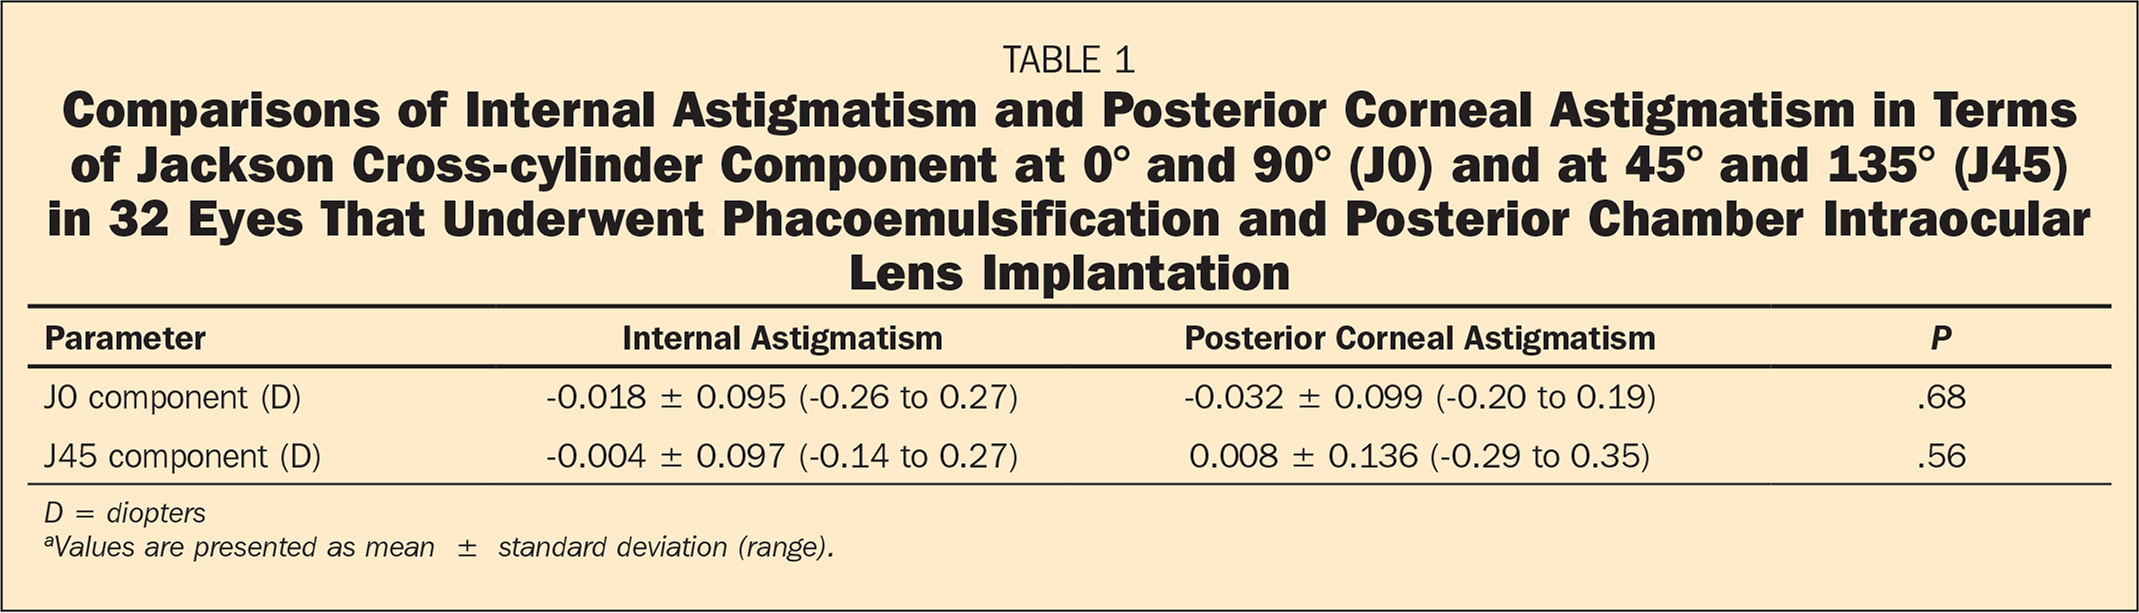 Comparisons of Internal Astigmatism and Posterior Corneal Astigmatism in Terms of Jackson Cross-cylinder Component at 0° and 90° (J0) and at 45° and 135° (J45) in 32 Eyes That Underwent Phacoemulsification and Posterior Chamber Intraocular Lens Implantation